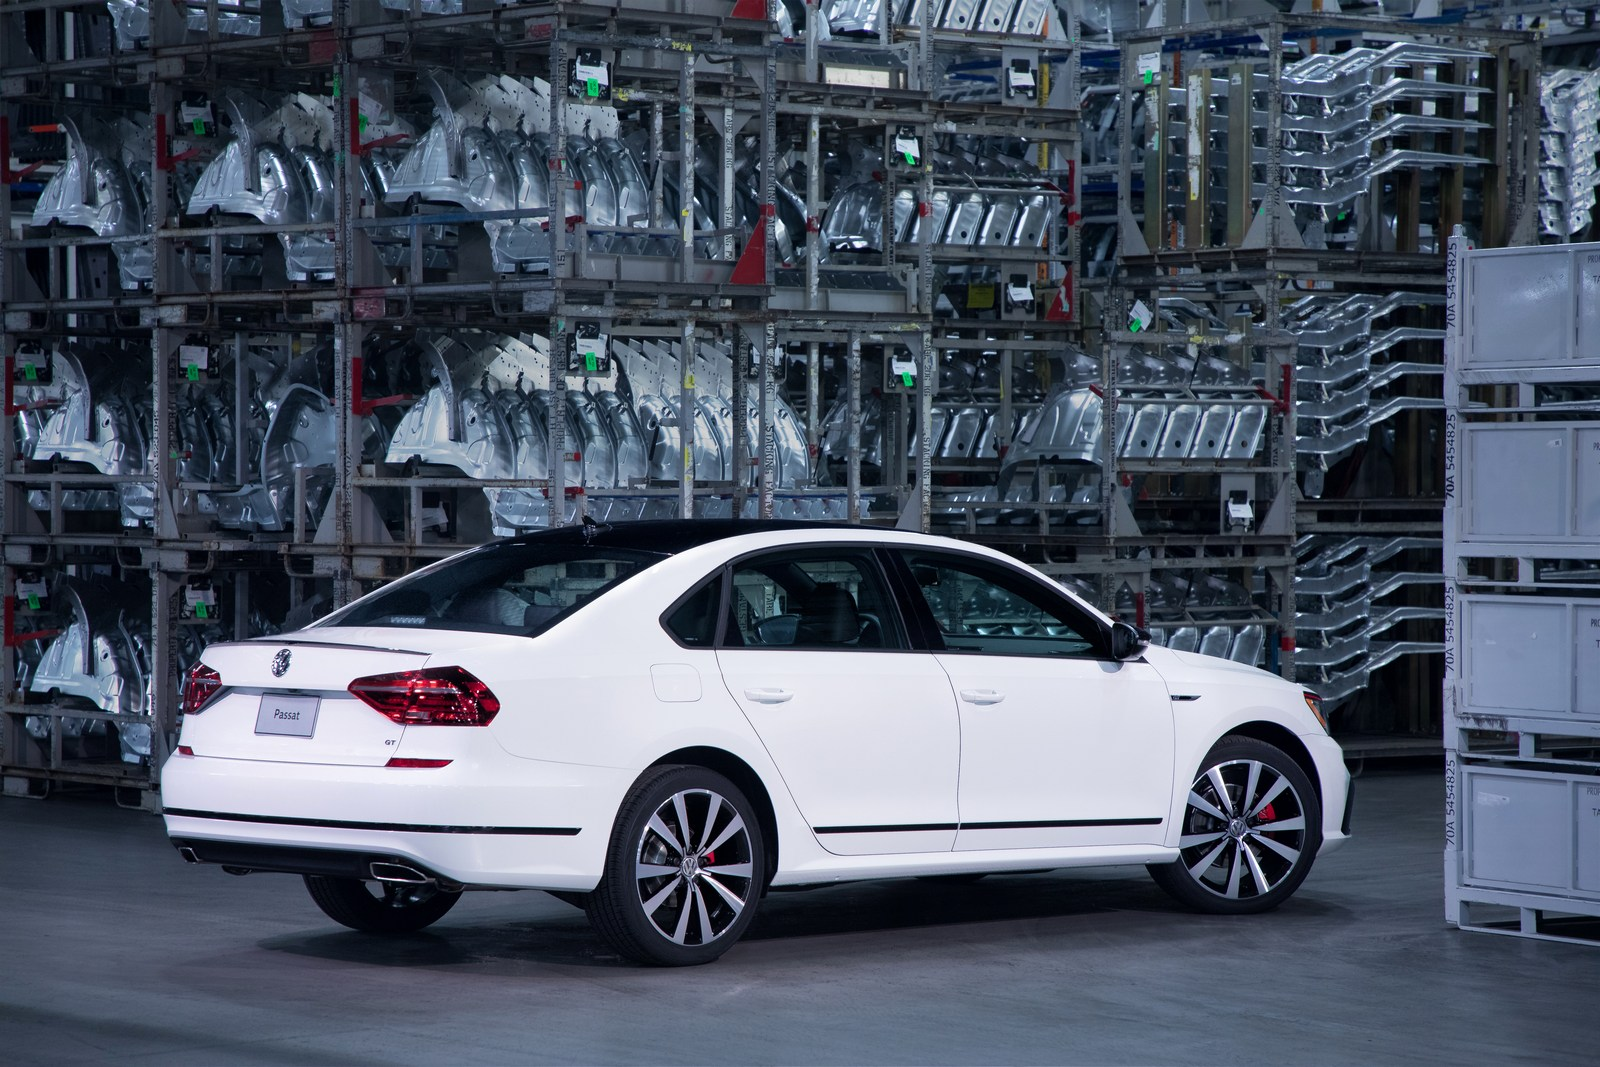 2018 VW Passat GT Combines Sportier Styling With 280HP V6 For Under $30k